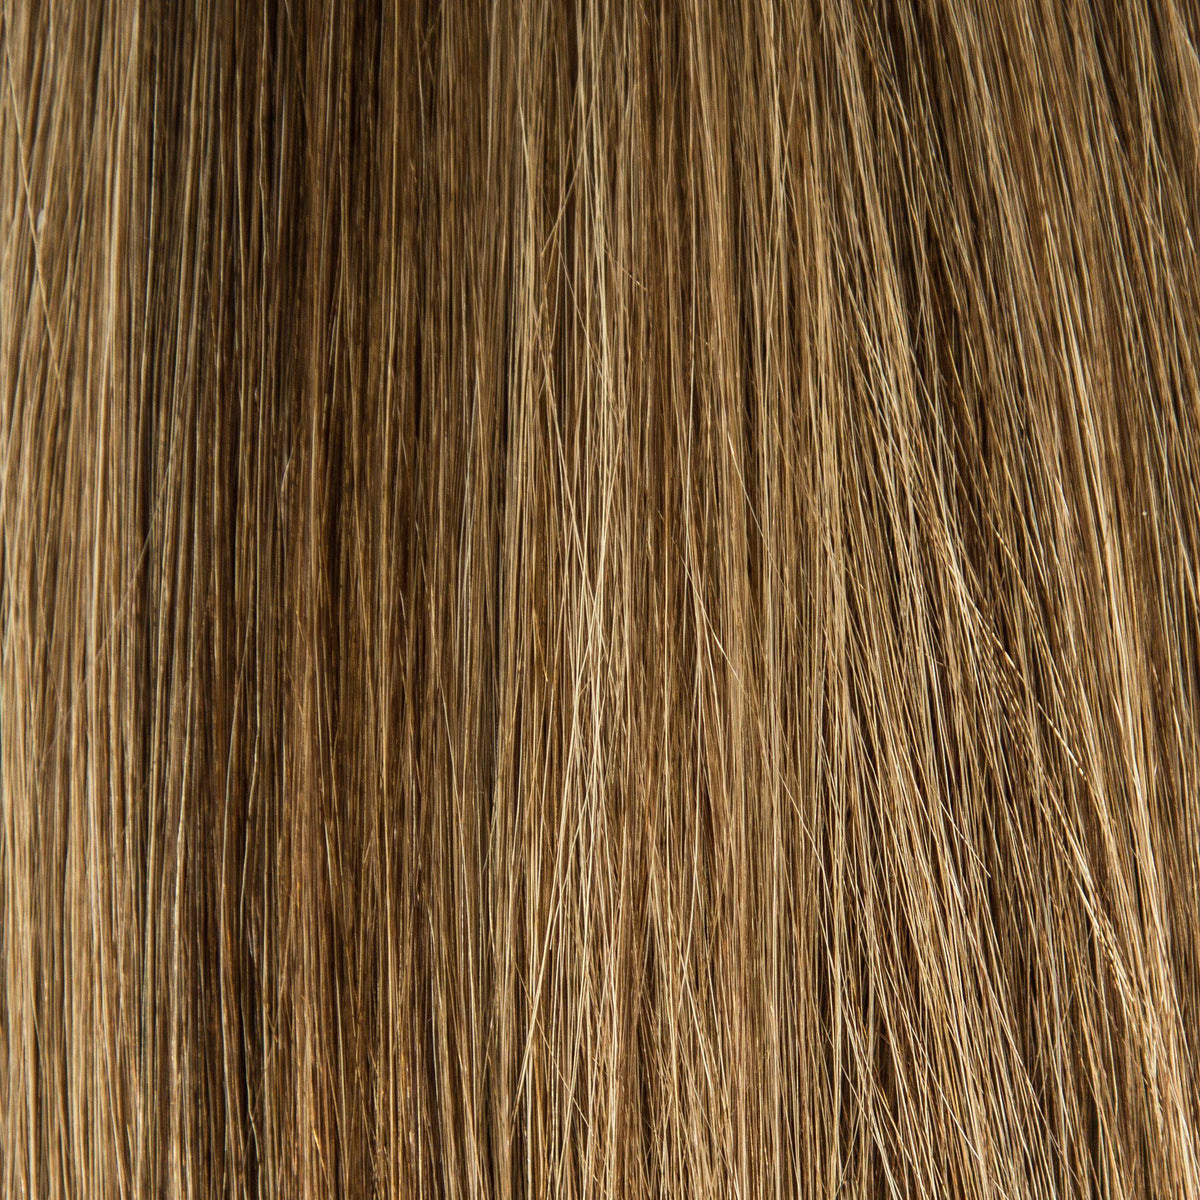 Waved By Laced Hair - Waved By Laced Hair Machine Sewn Weft Extensions Dimensional #4/8 (Cappuccino)